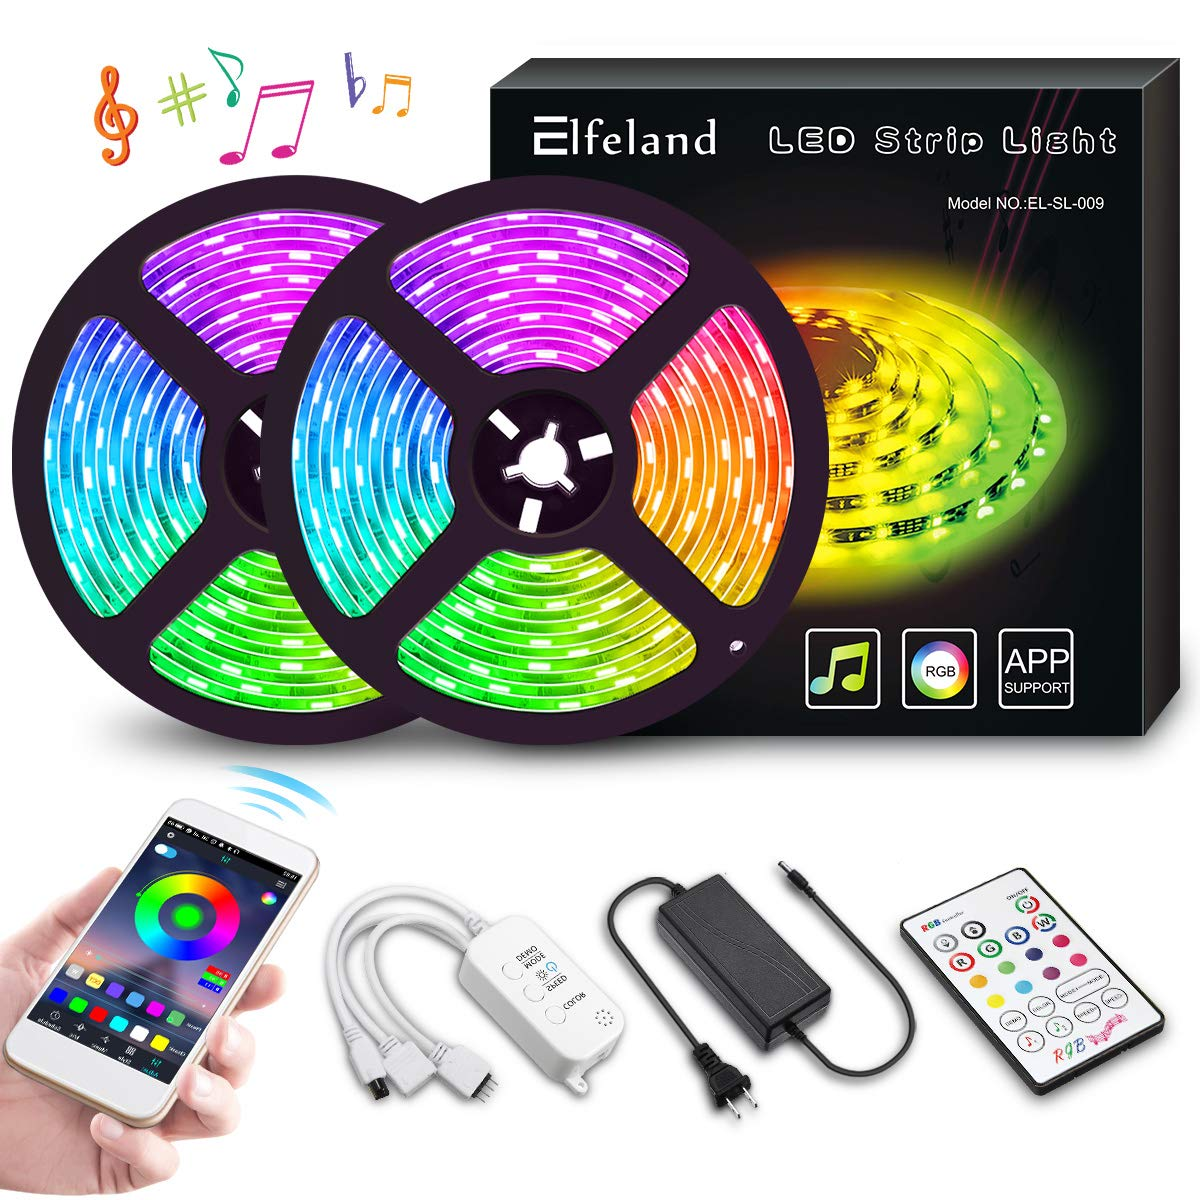 LED Strip Lights, Elfeland 10M 32.8ft 300 LEDs Color Changing Rope Lights 5050 RGB Light Strips with APP Waterproof Tape Lights Sync with Music Apply for Home Kitchen Decoration by Elfeland (Image #1)